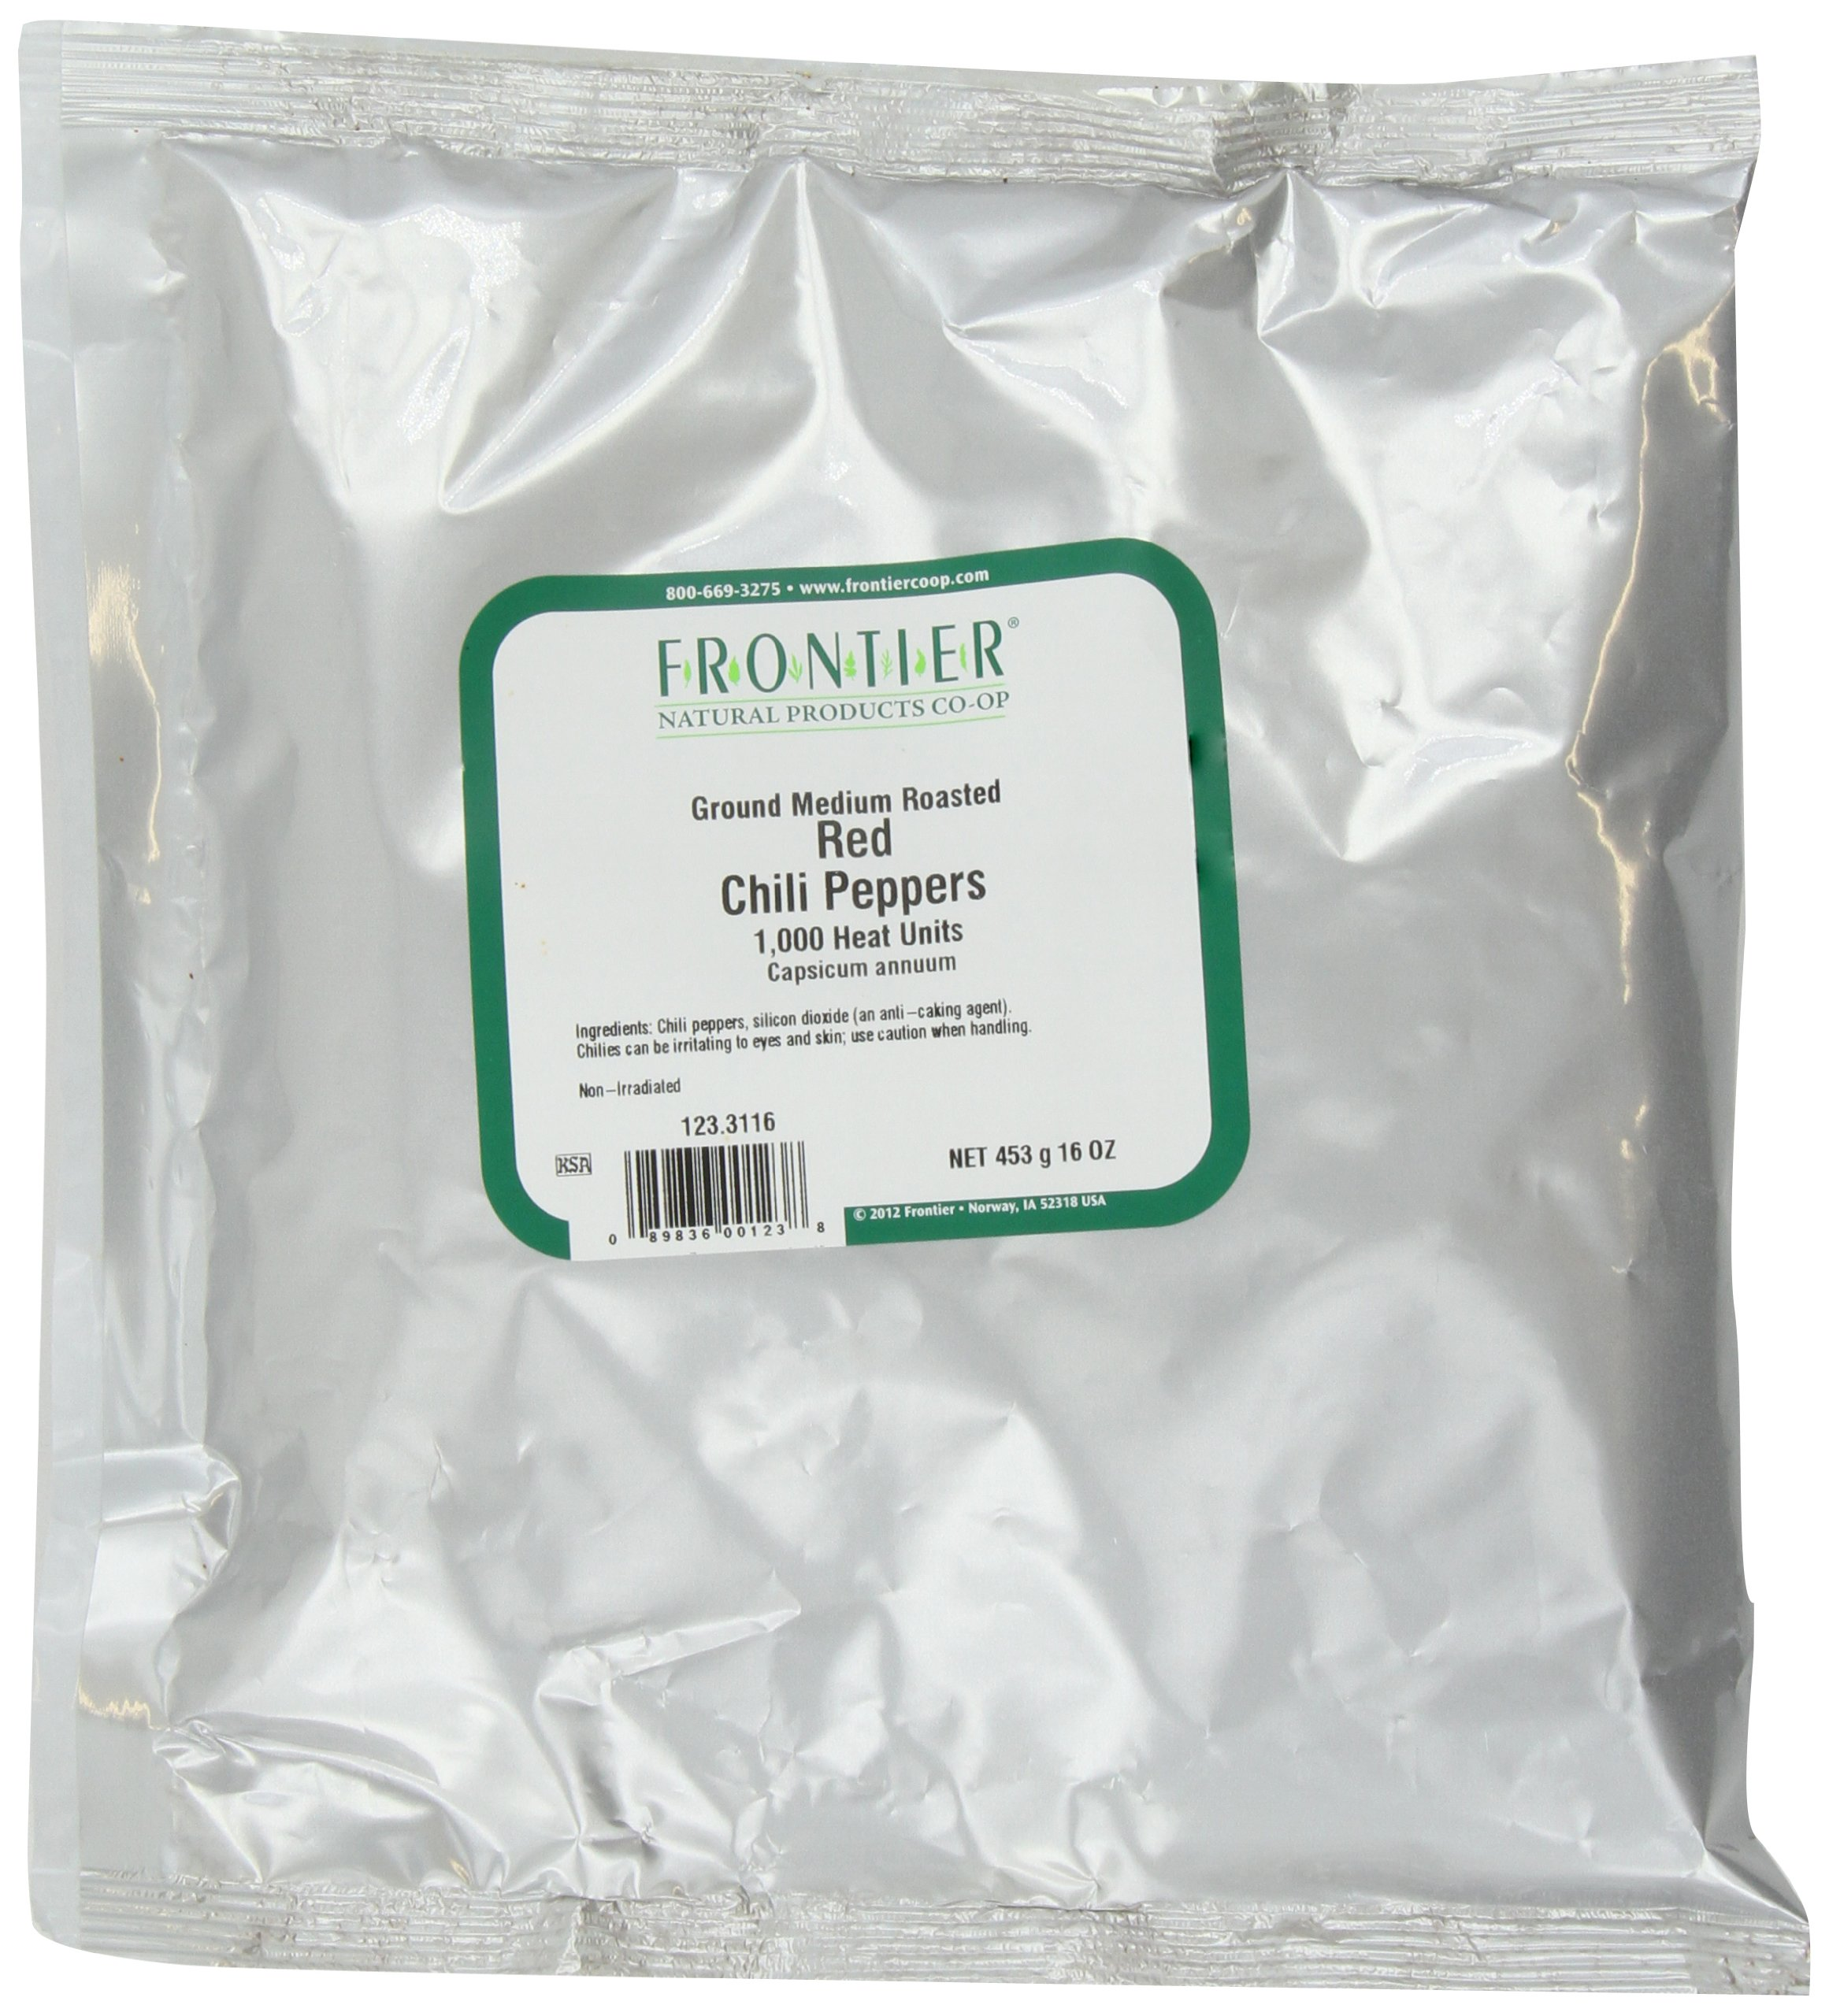 Frontier Chili Peppers Ground, Medium Roasted Powder, 16 Ounce Bags (Pack of 2)